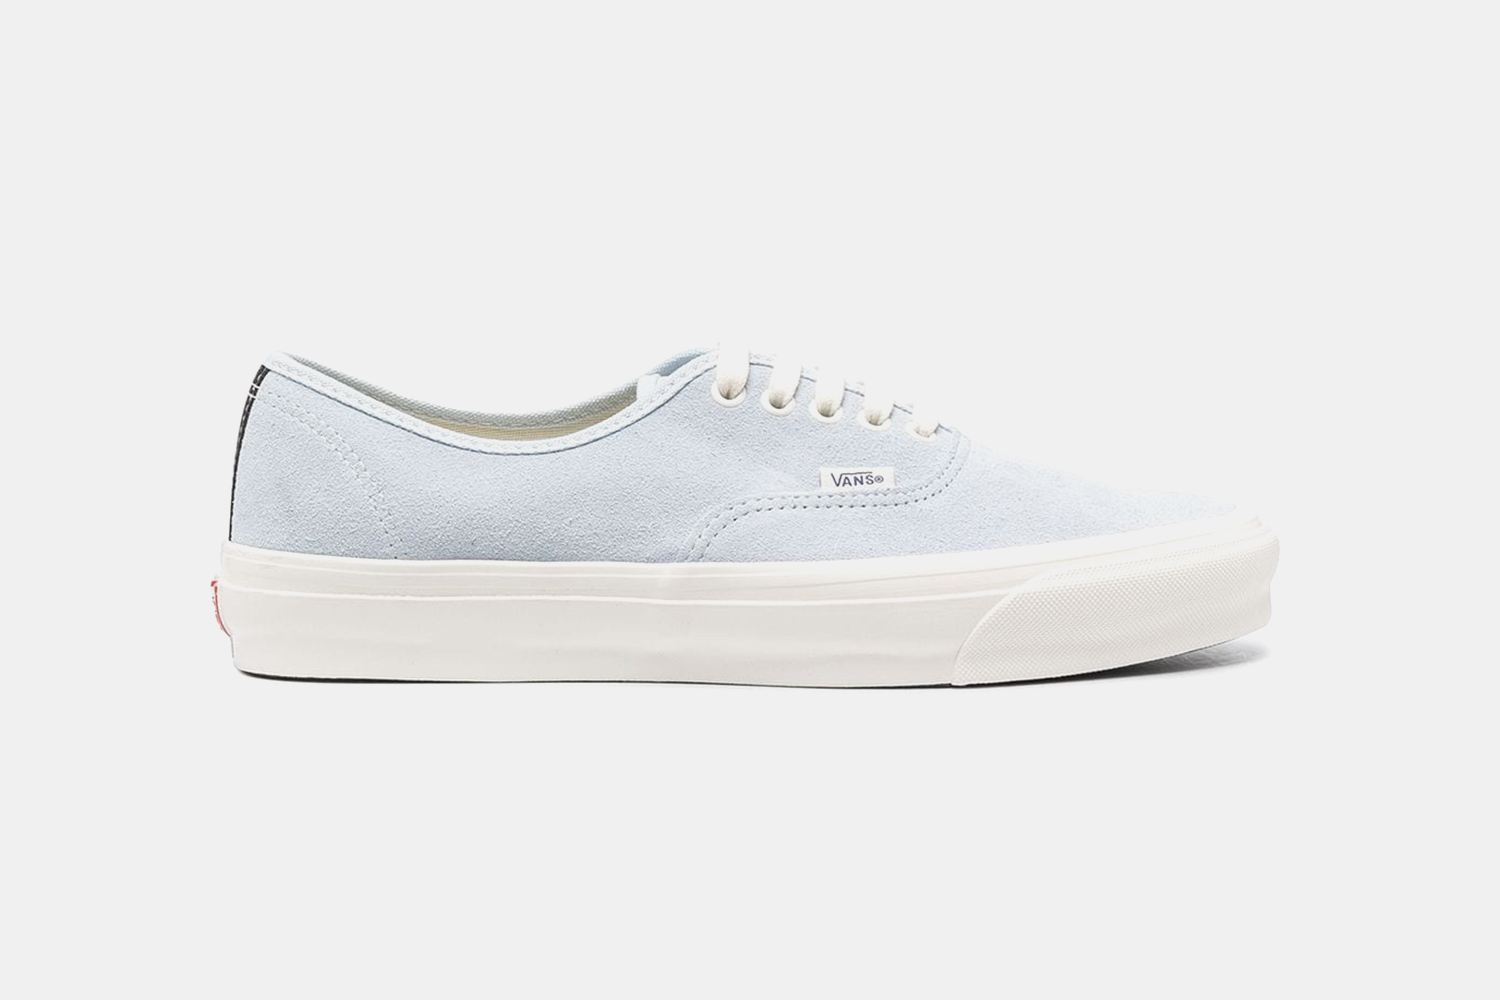 These Low-Top Blue Suede Vans Sneakers Are 40% Off - InsideHook